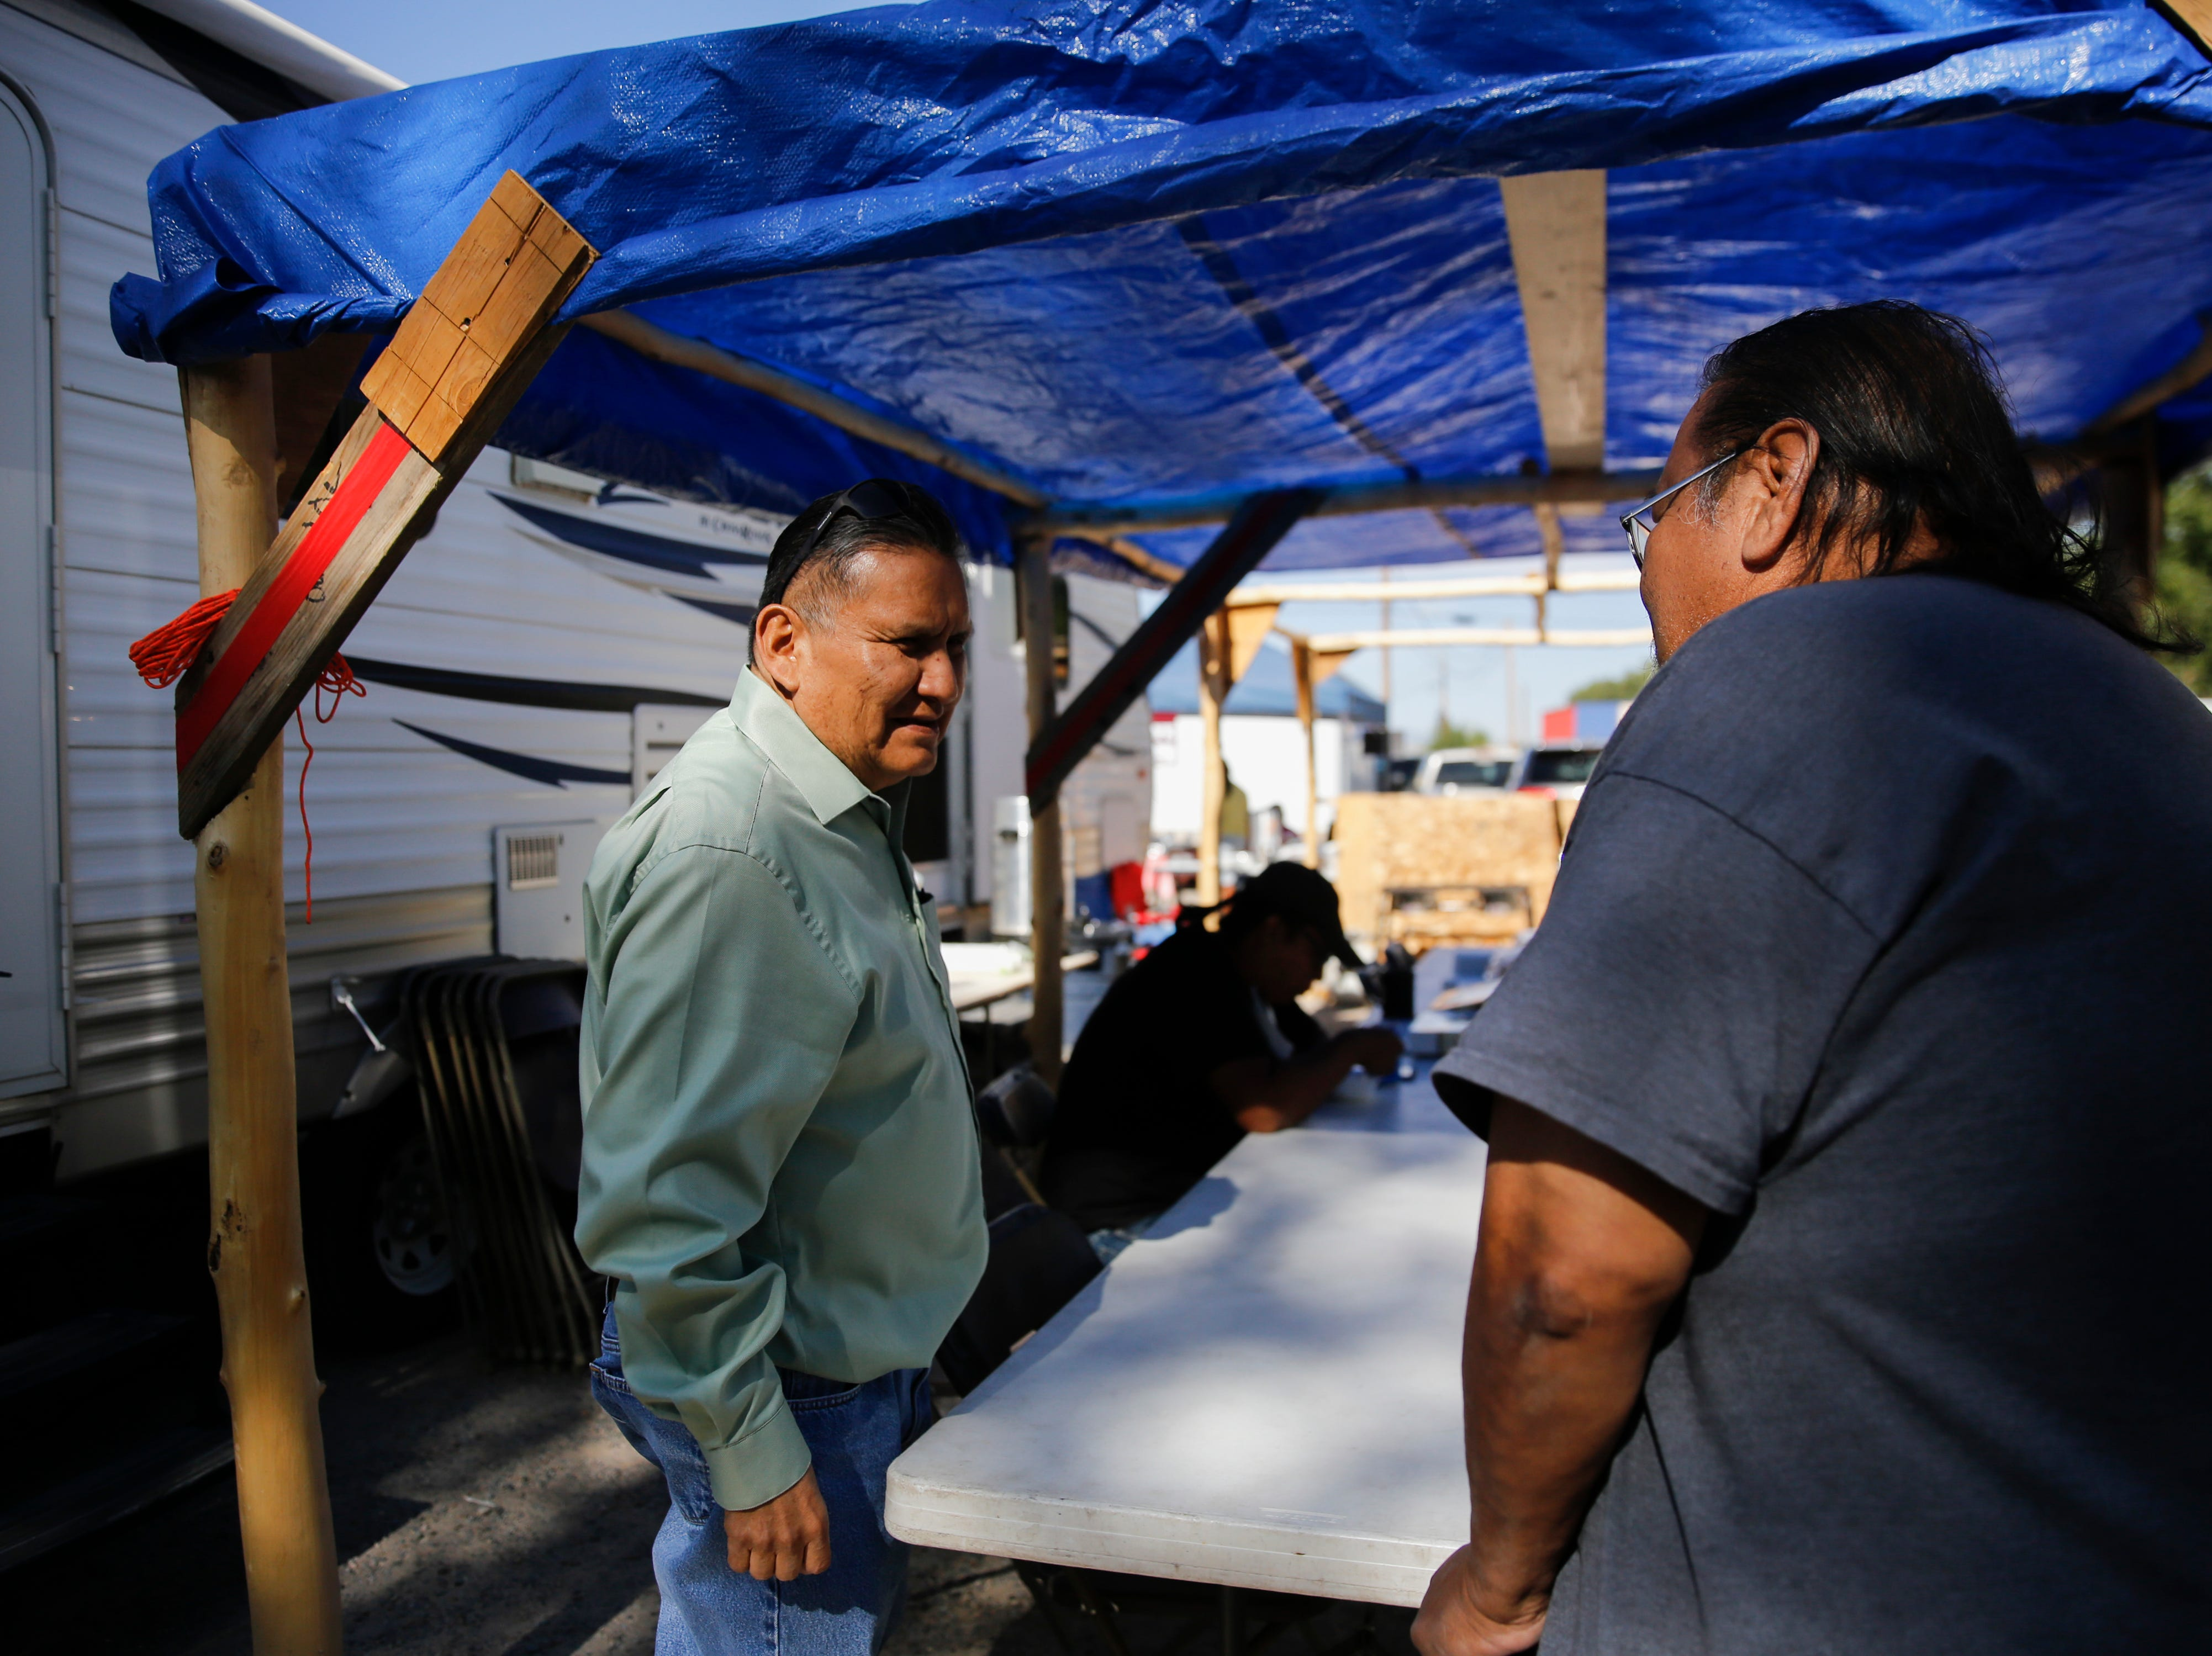 Dan Smith, left, a Navajo Nation Council Delegate candidate for Shiprock talks with voters, Tuesday, Aug. 28, 2018 at the Shiprock Chapter House.